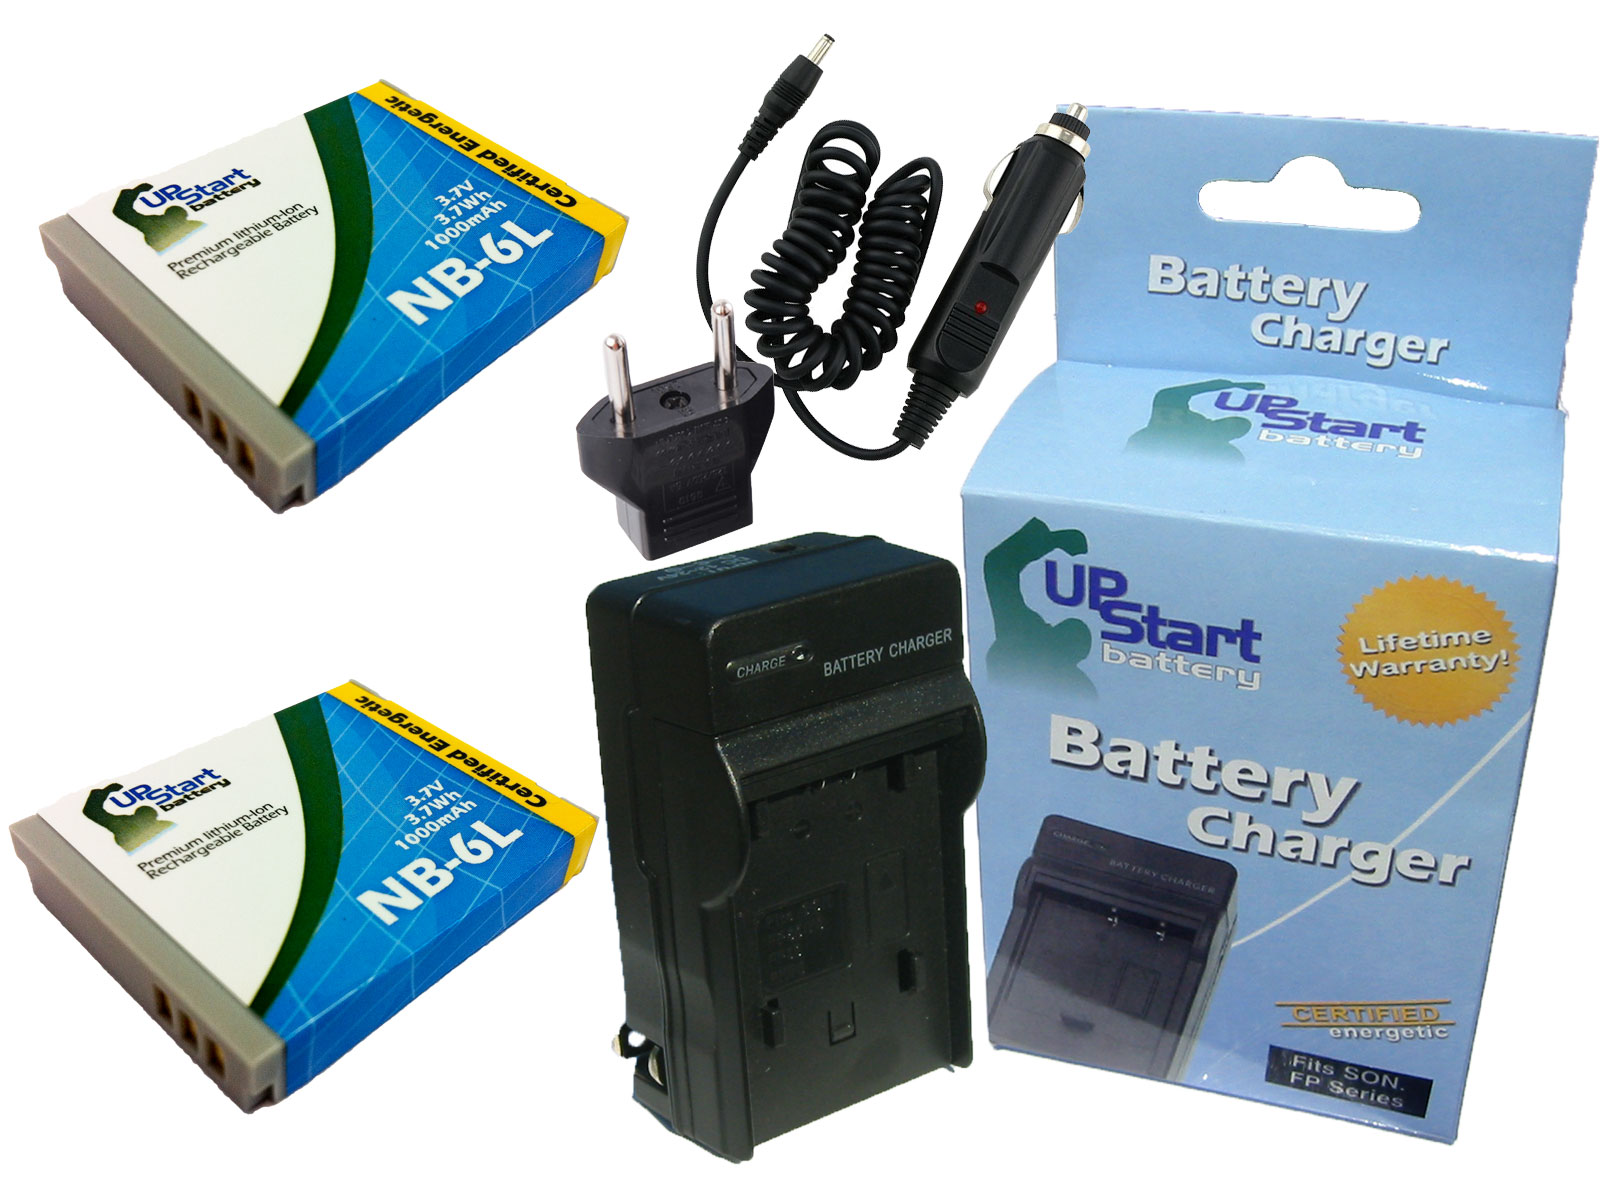 UpStart Battery 2x Pack - Canon IXUS 95 IS Battery + Charger with Car & EU Adapters - Replacement for Canon NB-6L Camera Battery and Charger at Sears.com